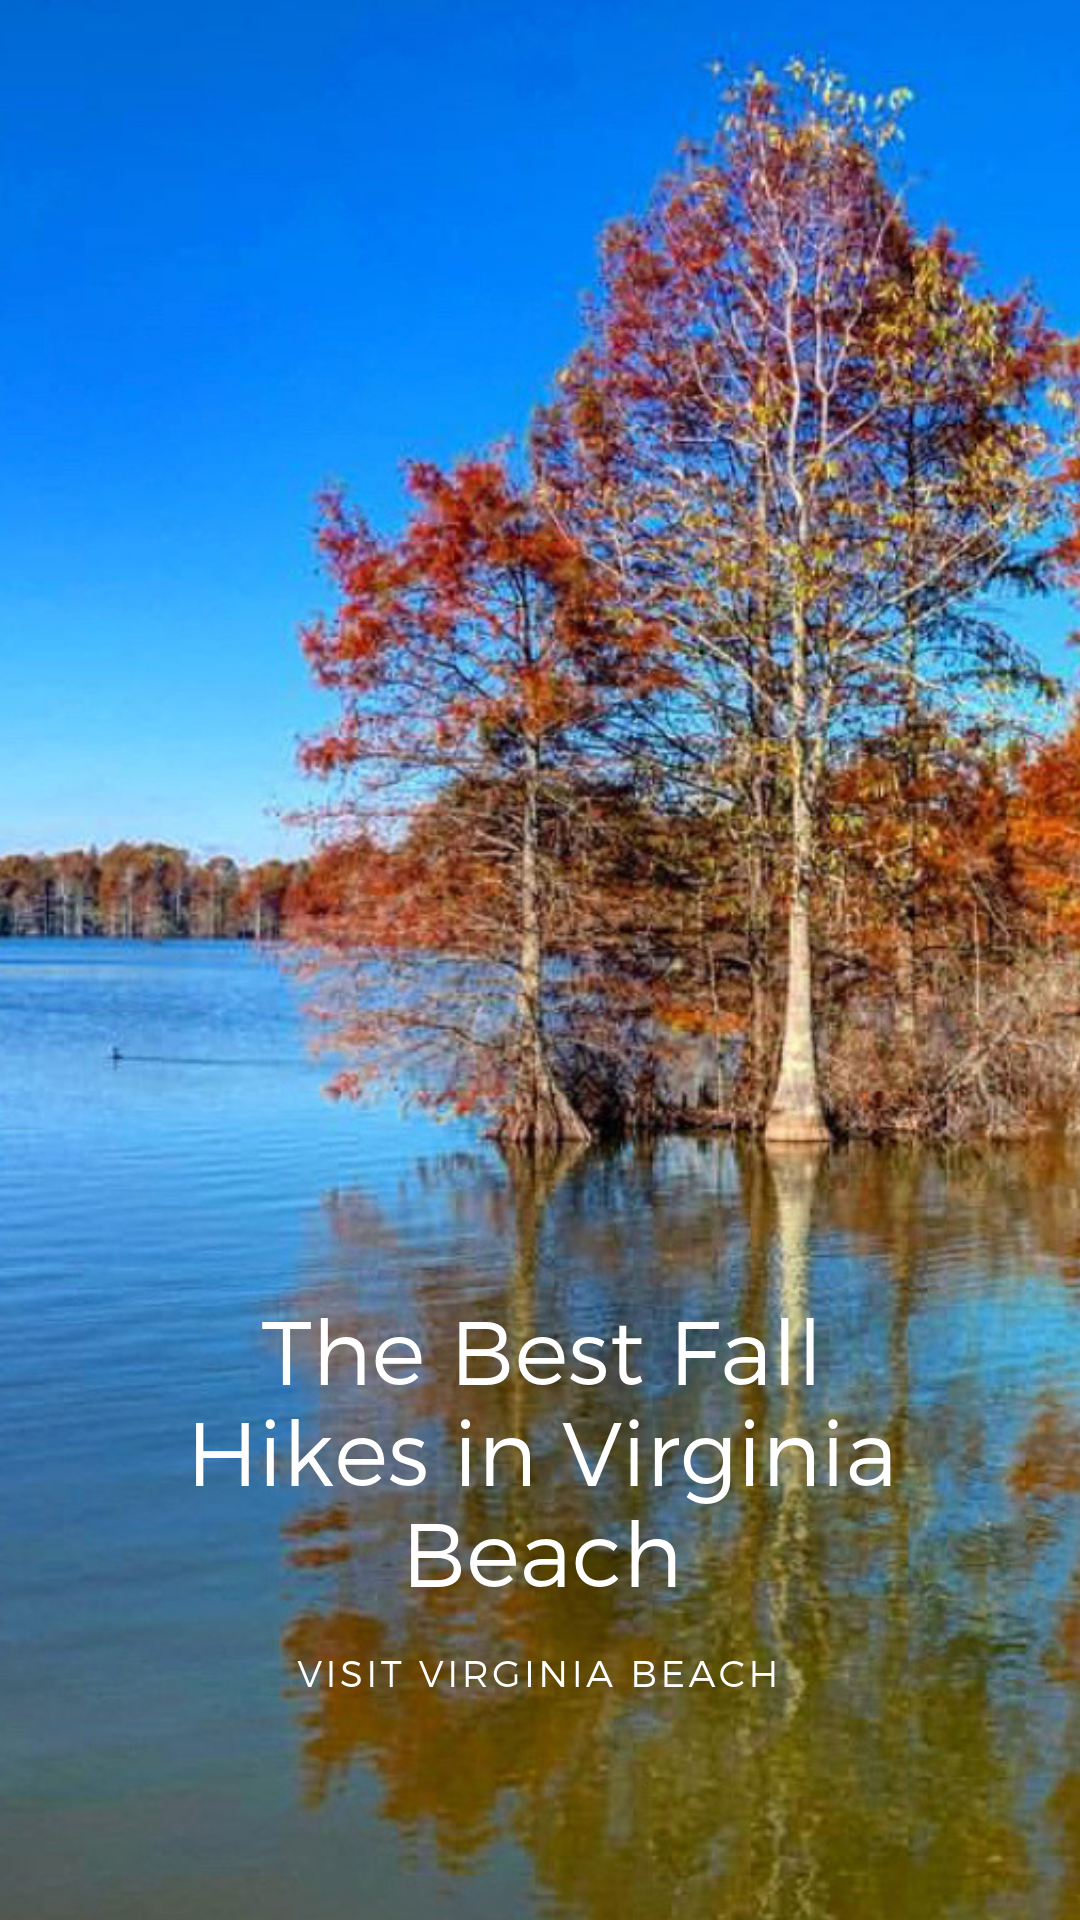 If You Love The Outdoors Check Out Best Fall Hikes In Va Beach